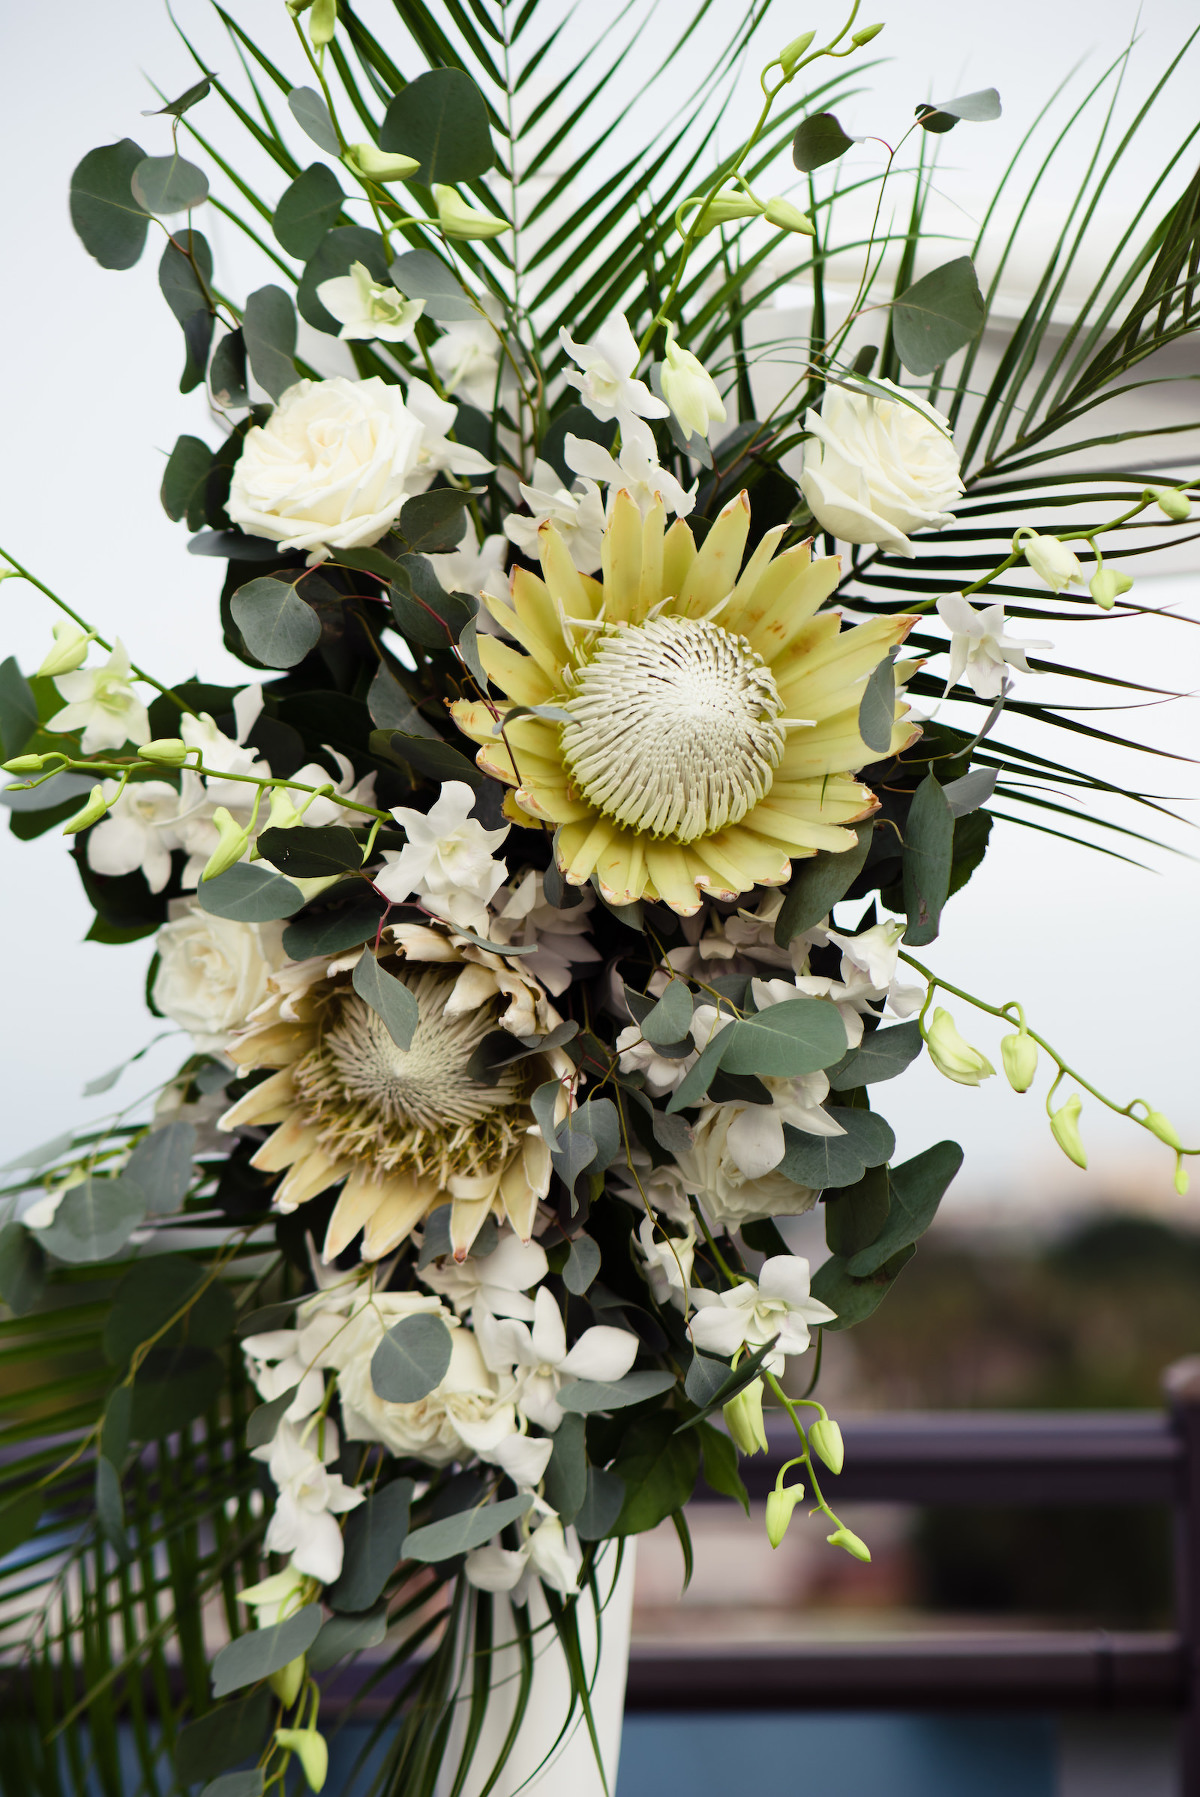 Neutral Boho Wedding Ceremony Decor, White and Yellow King Proteas, White Roses, Eucalyptus, Palm Fronds, White Orchids Wedding Floral Arrangement | Tampa Bay Wedding Planner Perfecting the Plan | Wedding Florist Iza's Flowers